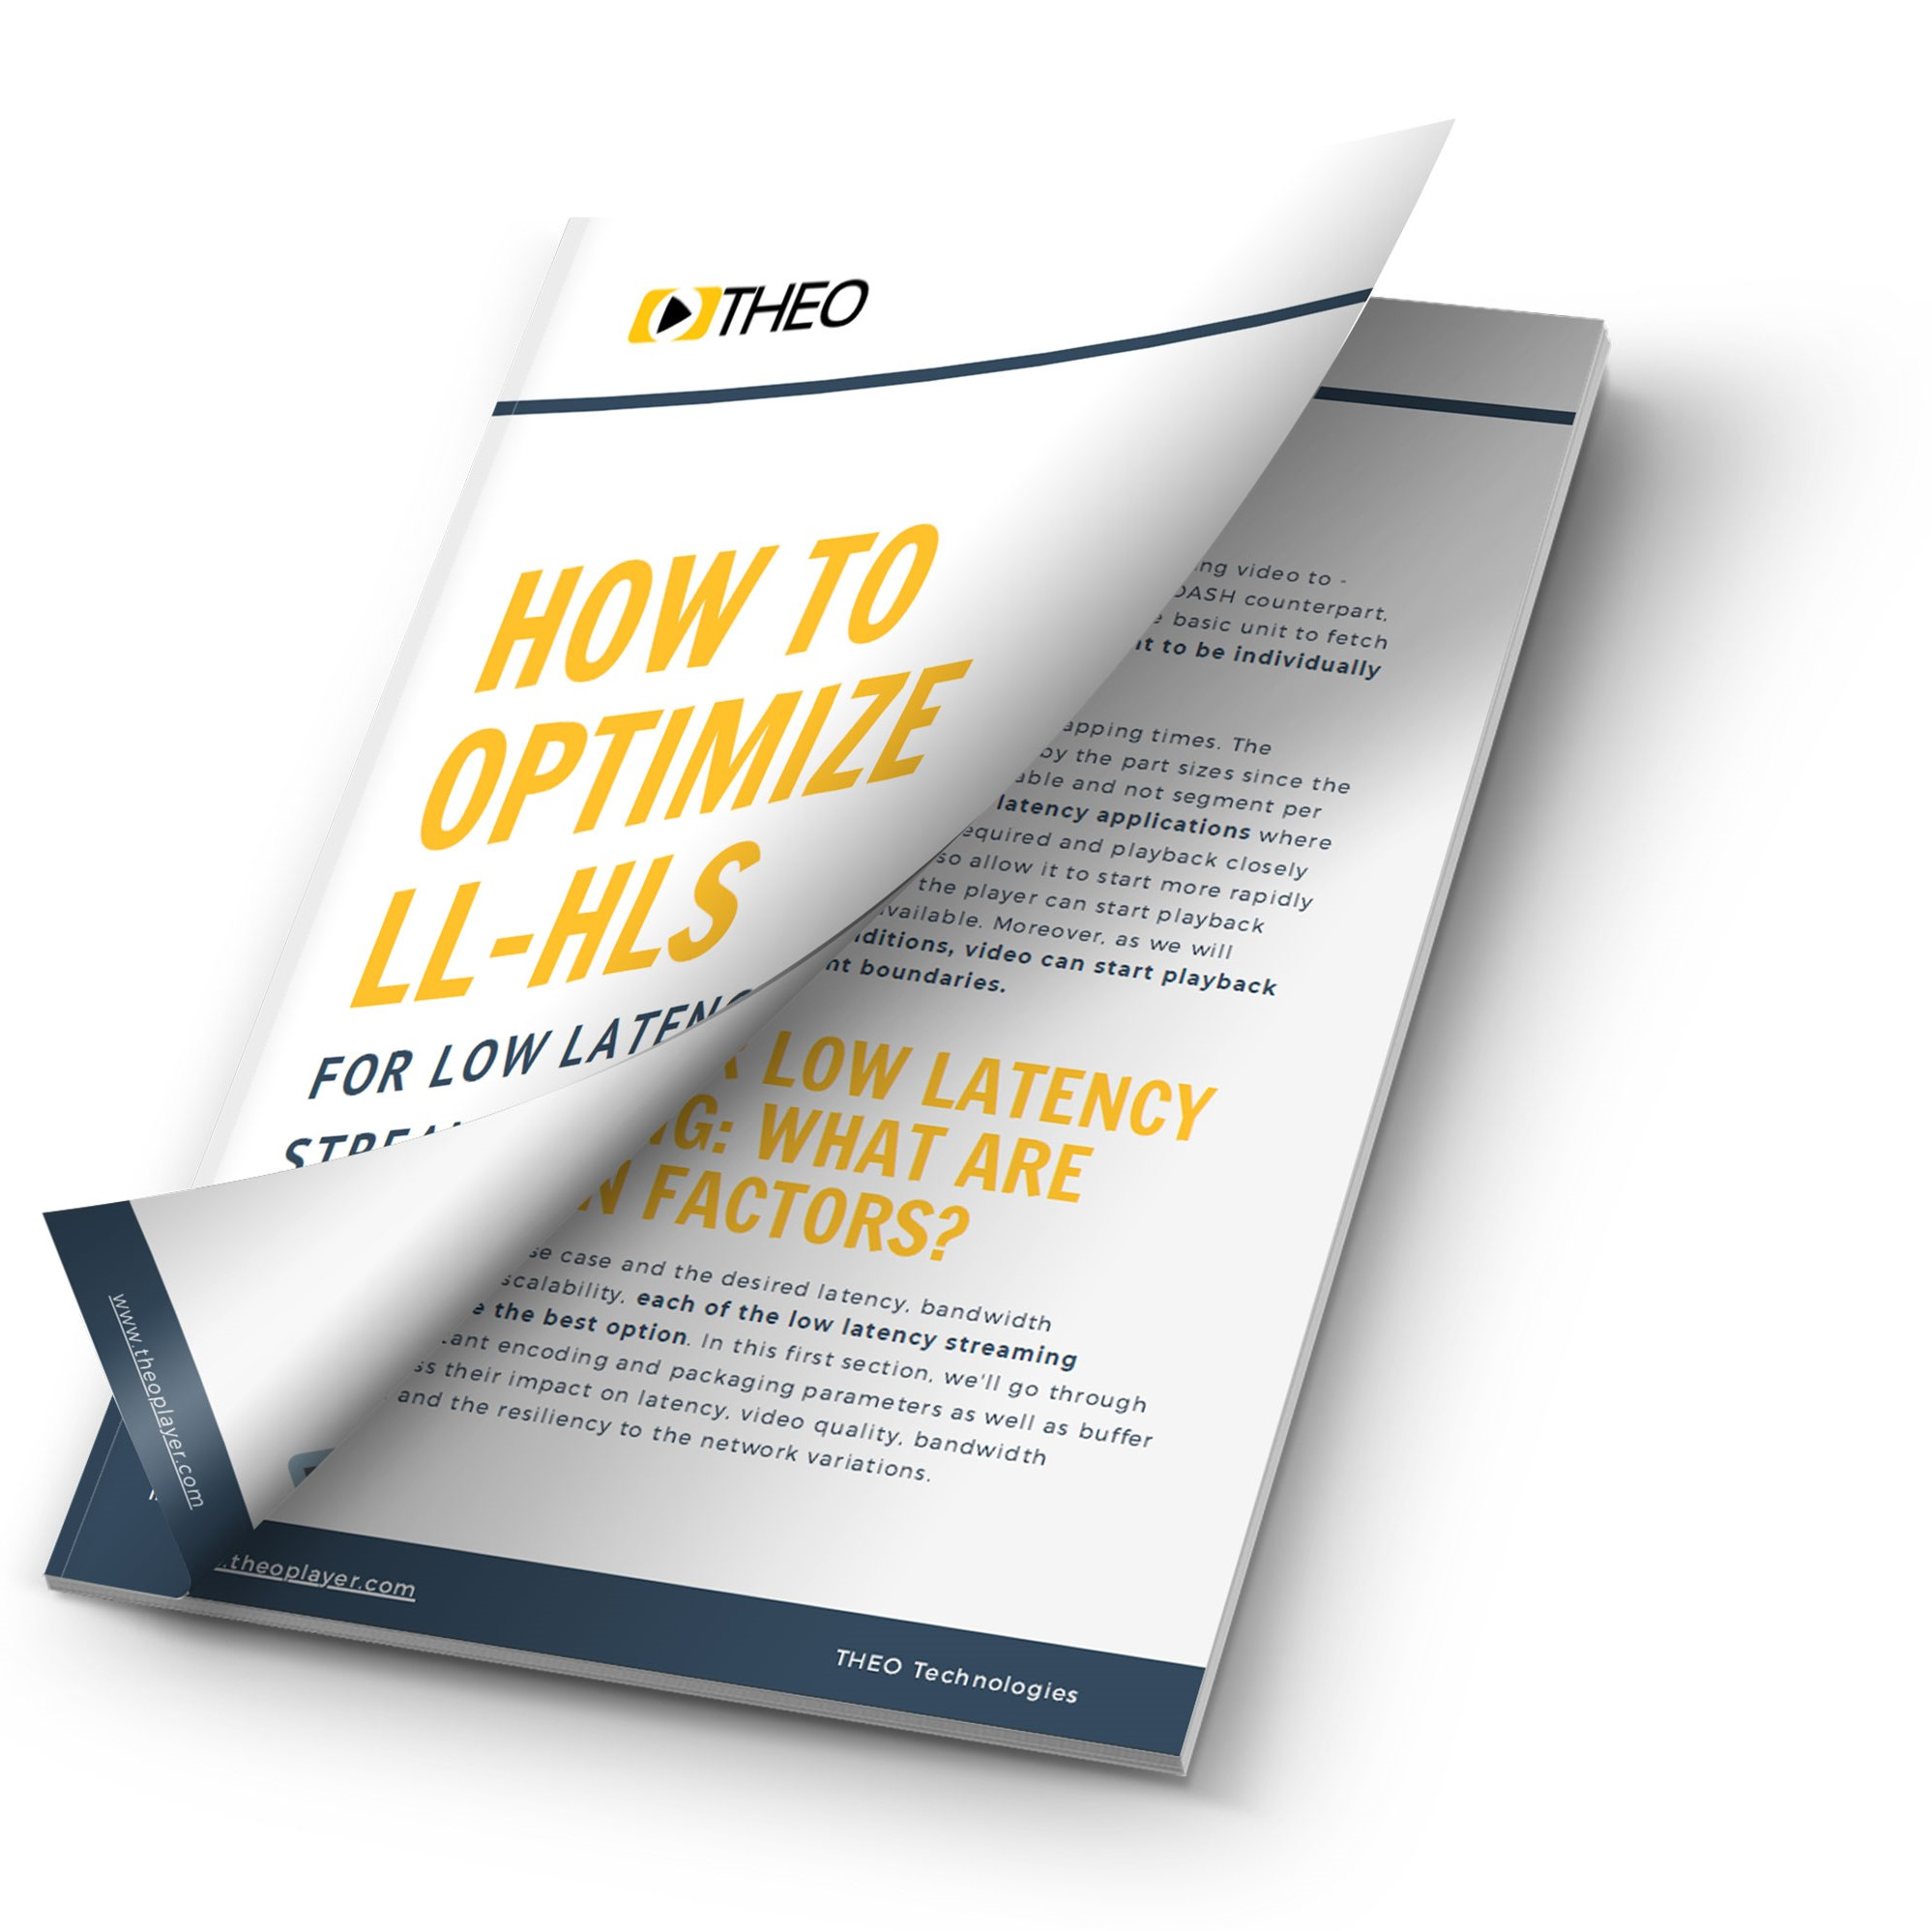 How to Optimize LL-HLS for Low Latency Streaming Guide